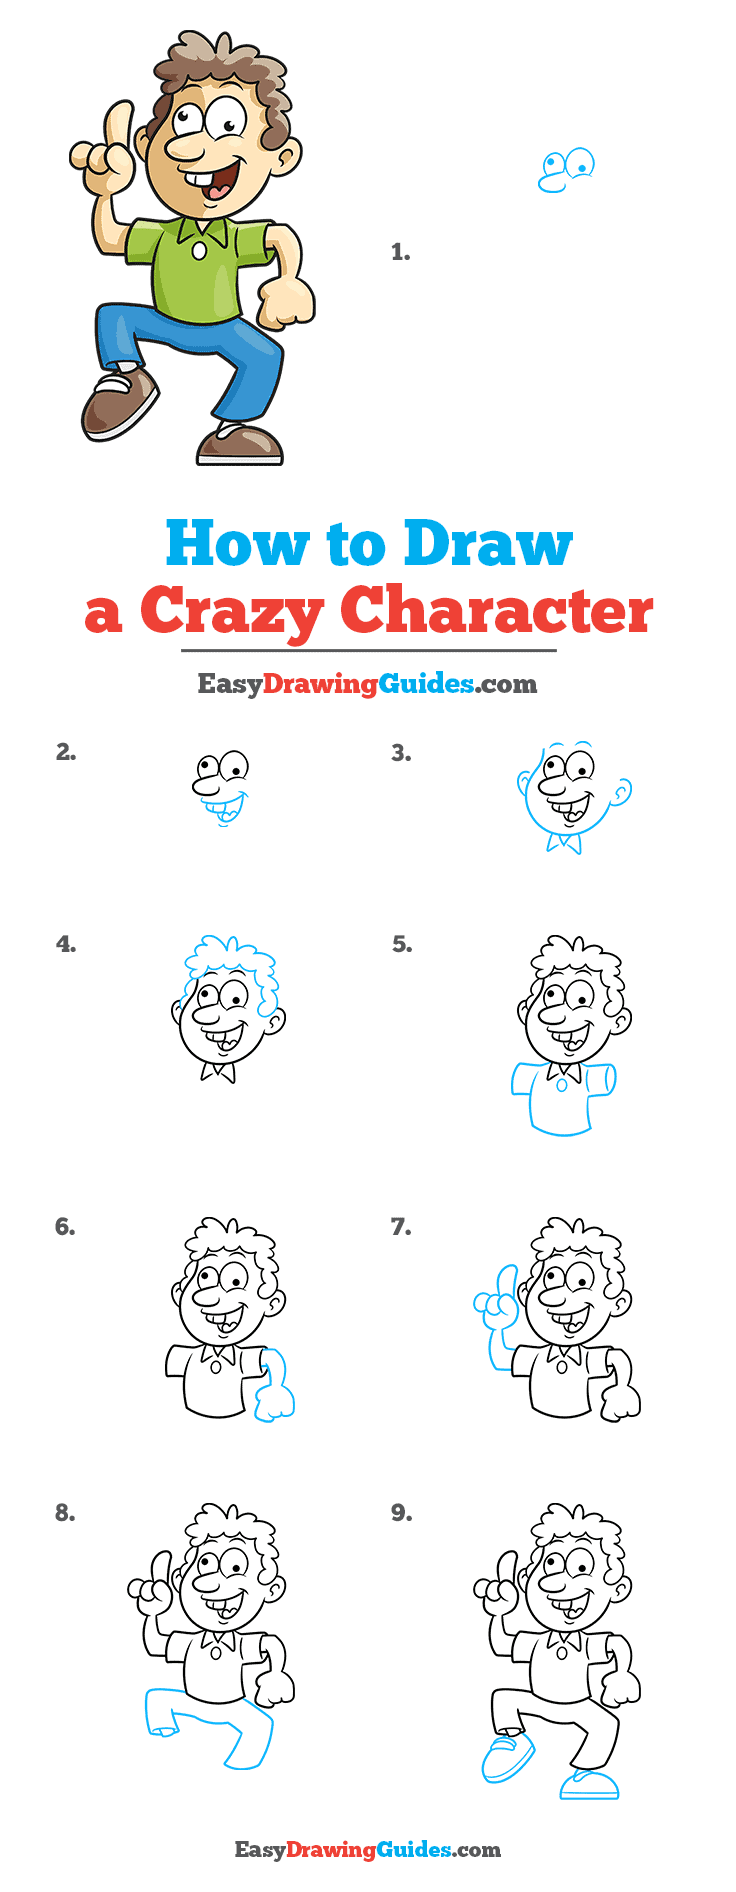 How to Draw a Crazy Character Step by Step Tutorial Image